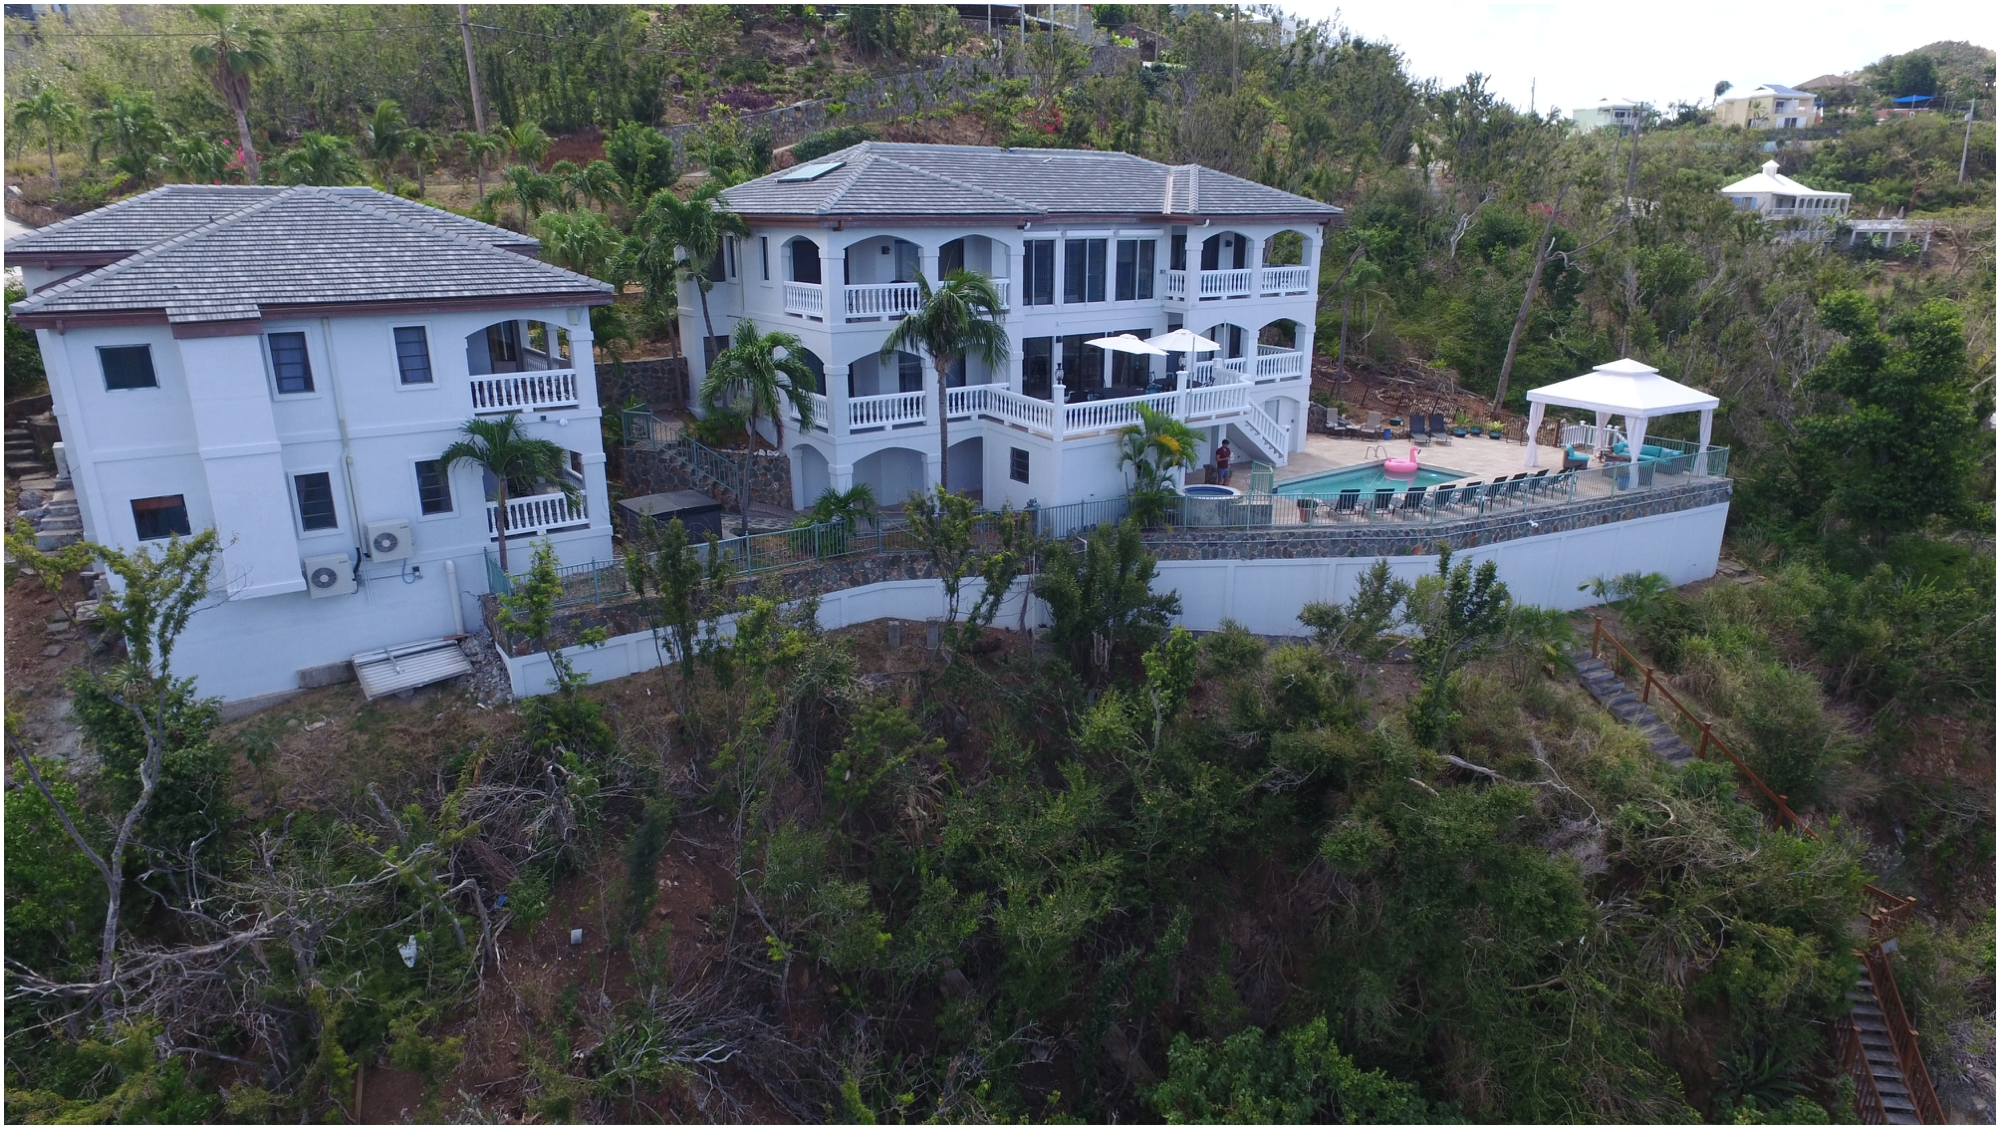 This home lost 90% of its roof, all of it's interior walls and the floors were terminally damaged. Unique Island Assets proudly oversaw the restoration and completed a $1M remodel in just 4 short months, 2 of them without electricity and challenging supply logistics. The home re-opened for business March 17th with celebration. We have tremendous gratitude to the over 100 local workers who assisted in this heroic effort and its contribution to our economy.